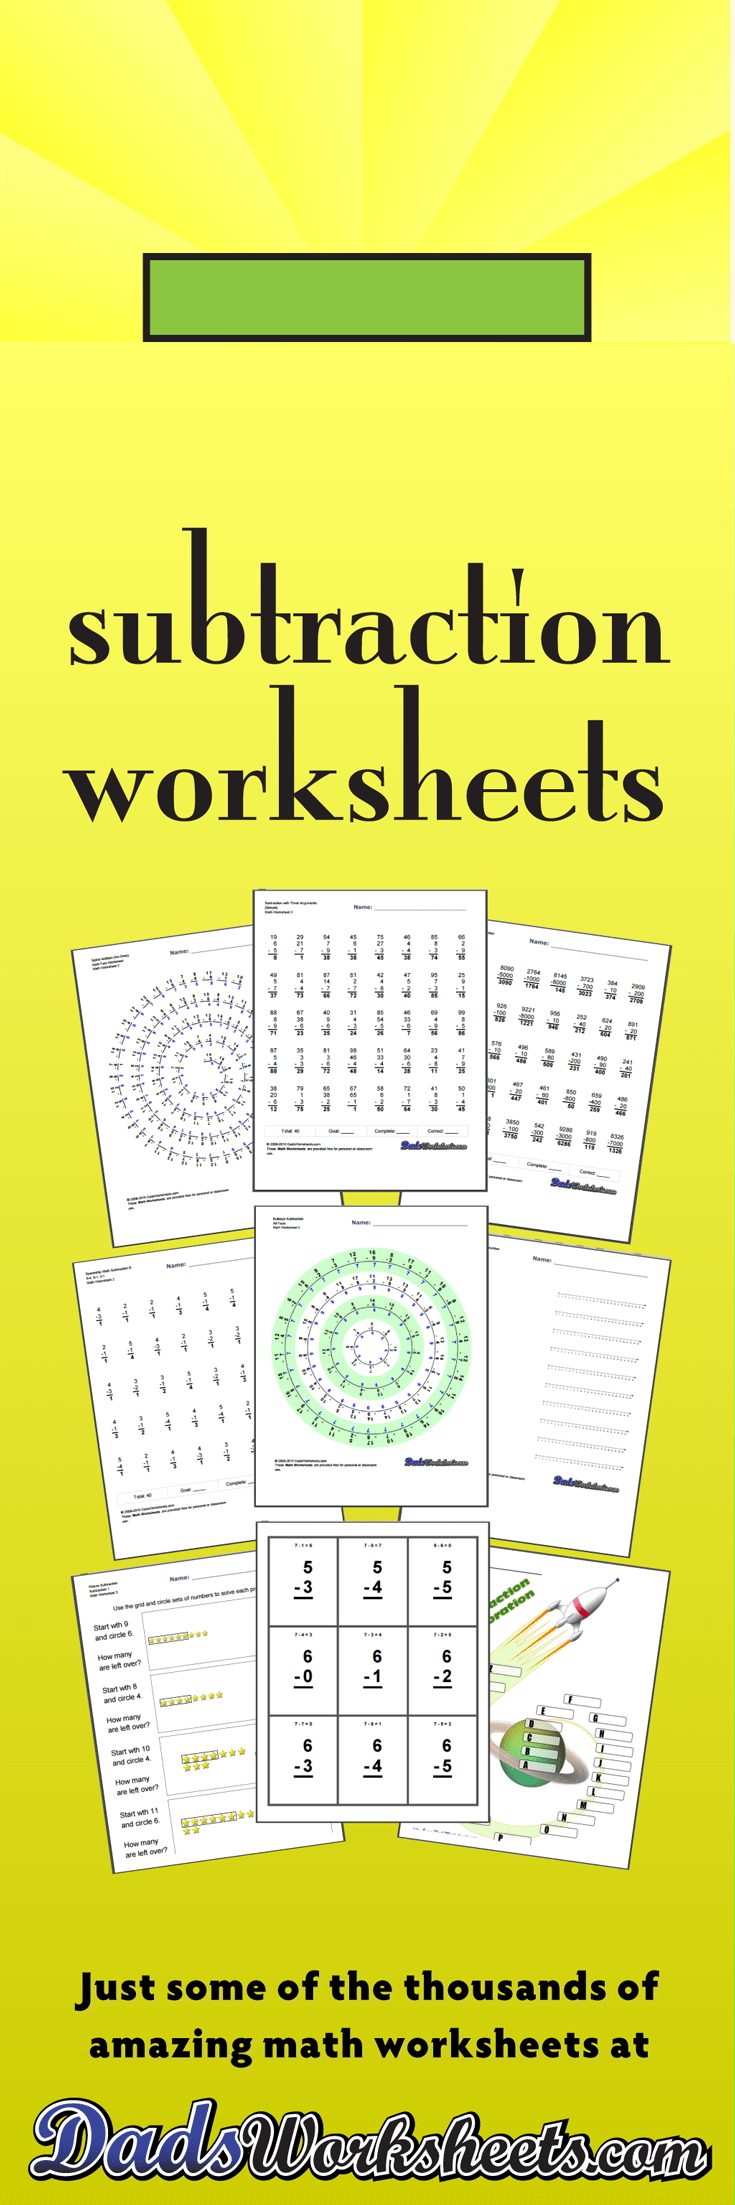 hight resolution of Subtraction Worksheets for Math Practice!